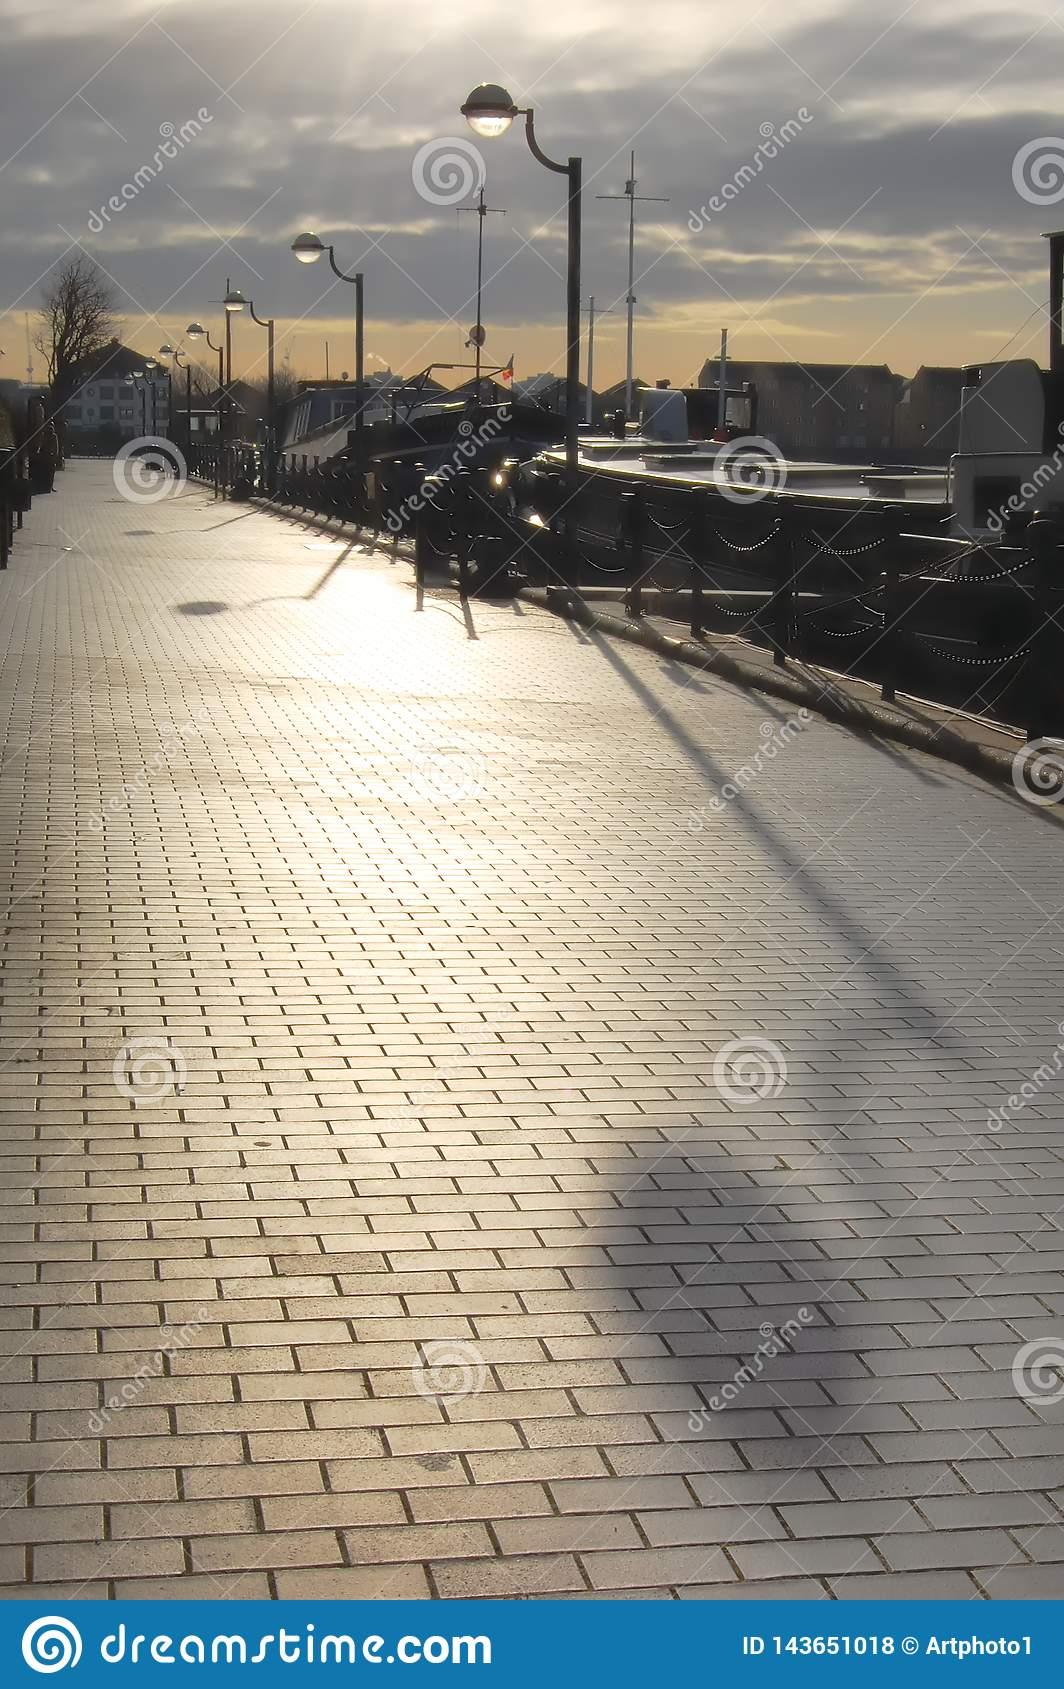 Boats moored next to footpath with long lamp post shadows